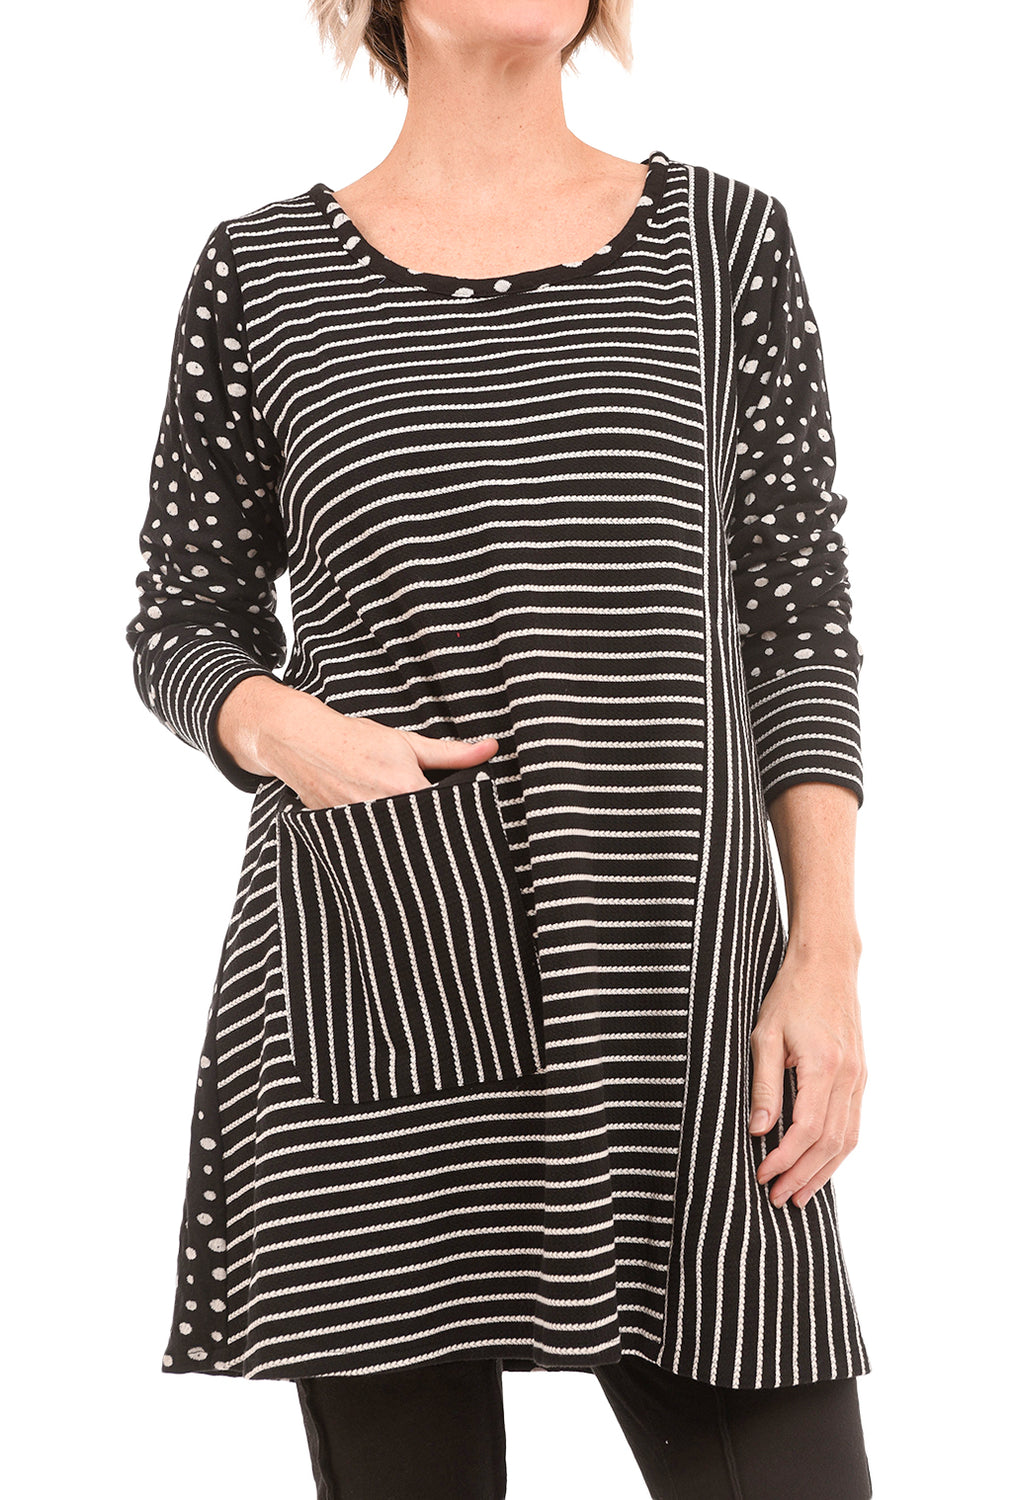 Tulip Kyra Tunic, Puddles Black